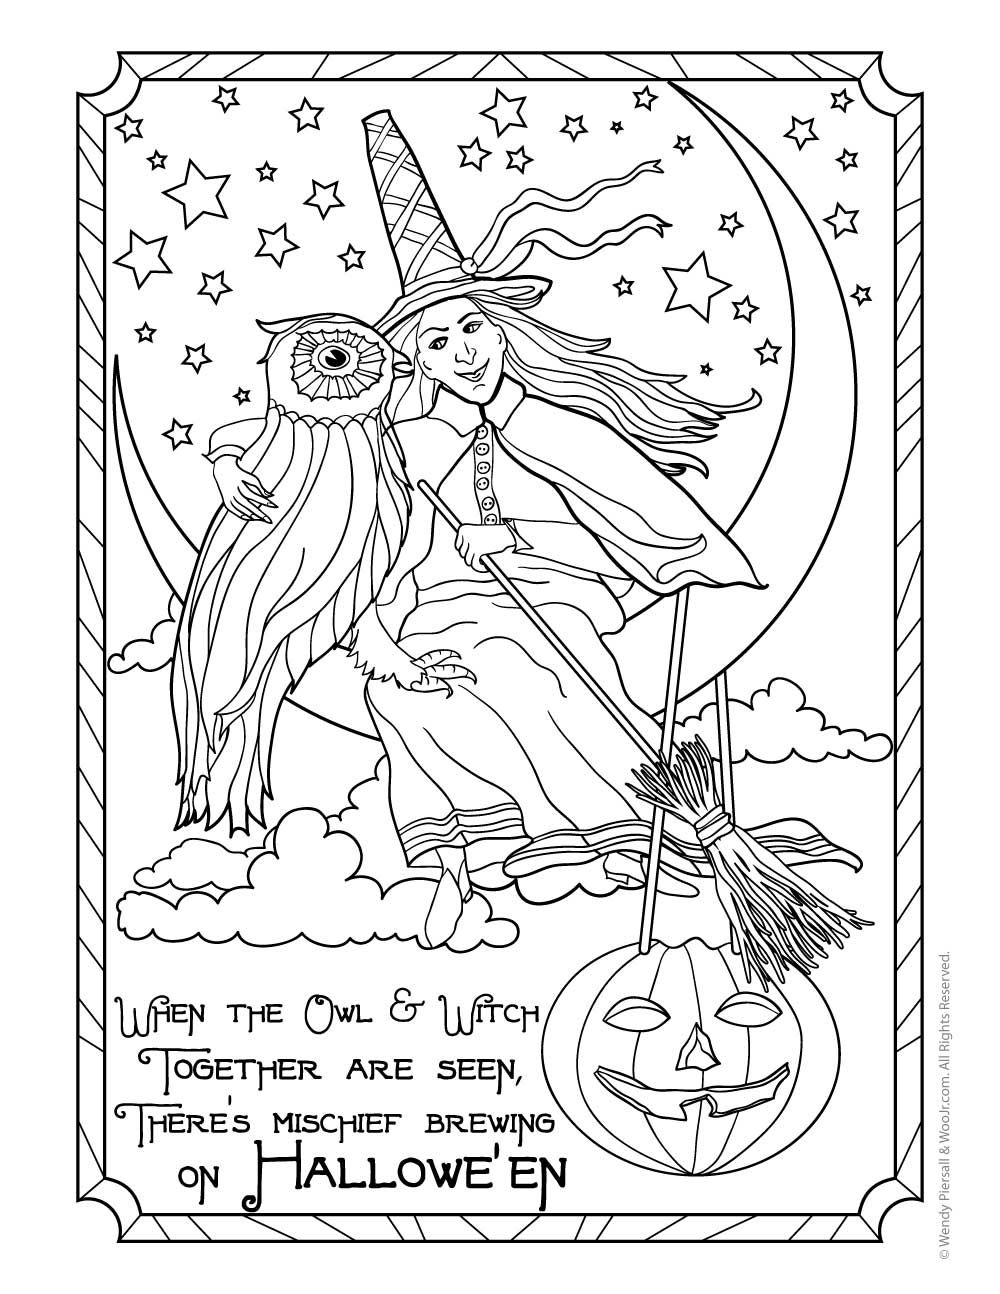 Witch And Owl Vintage Halloween Postcard Coloring Page Woo Jr Kids Activities Owl Coloring Pages Halloween Coloring Pages Witch Coloring Pages